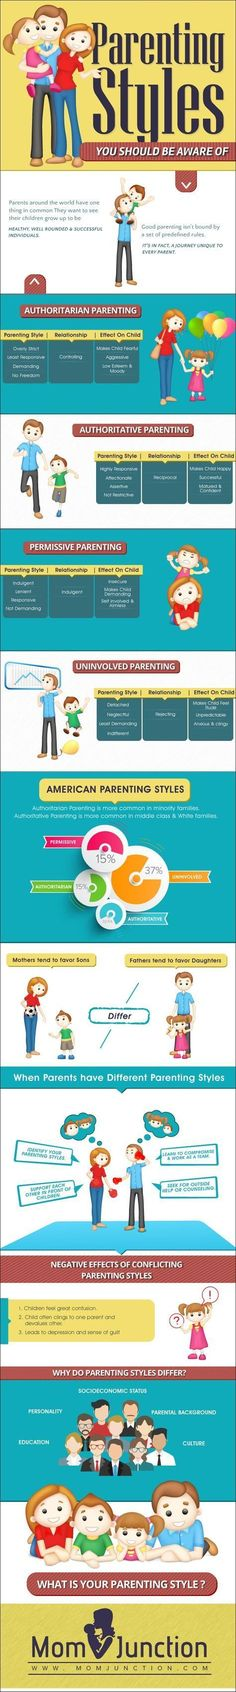 Parenting styles chart - Are you aware that different parenting styles have different impact & influences a child's development. Read further to know which one is your parenting style #parentingtipsquotes